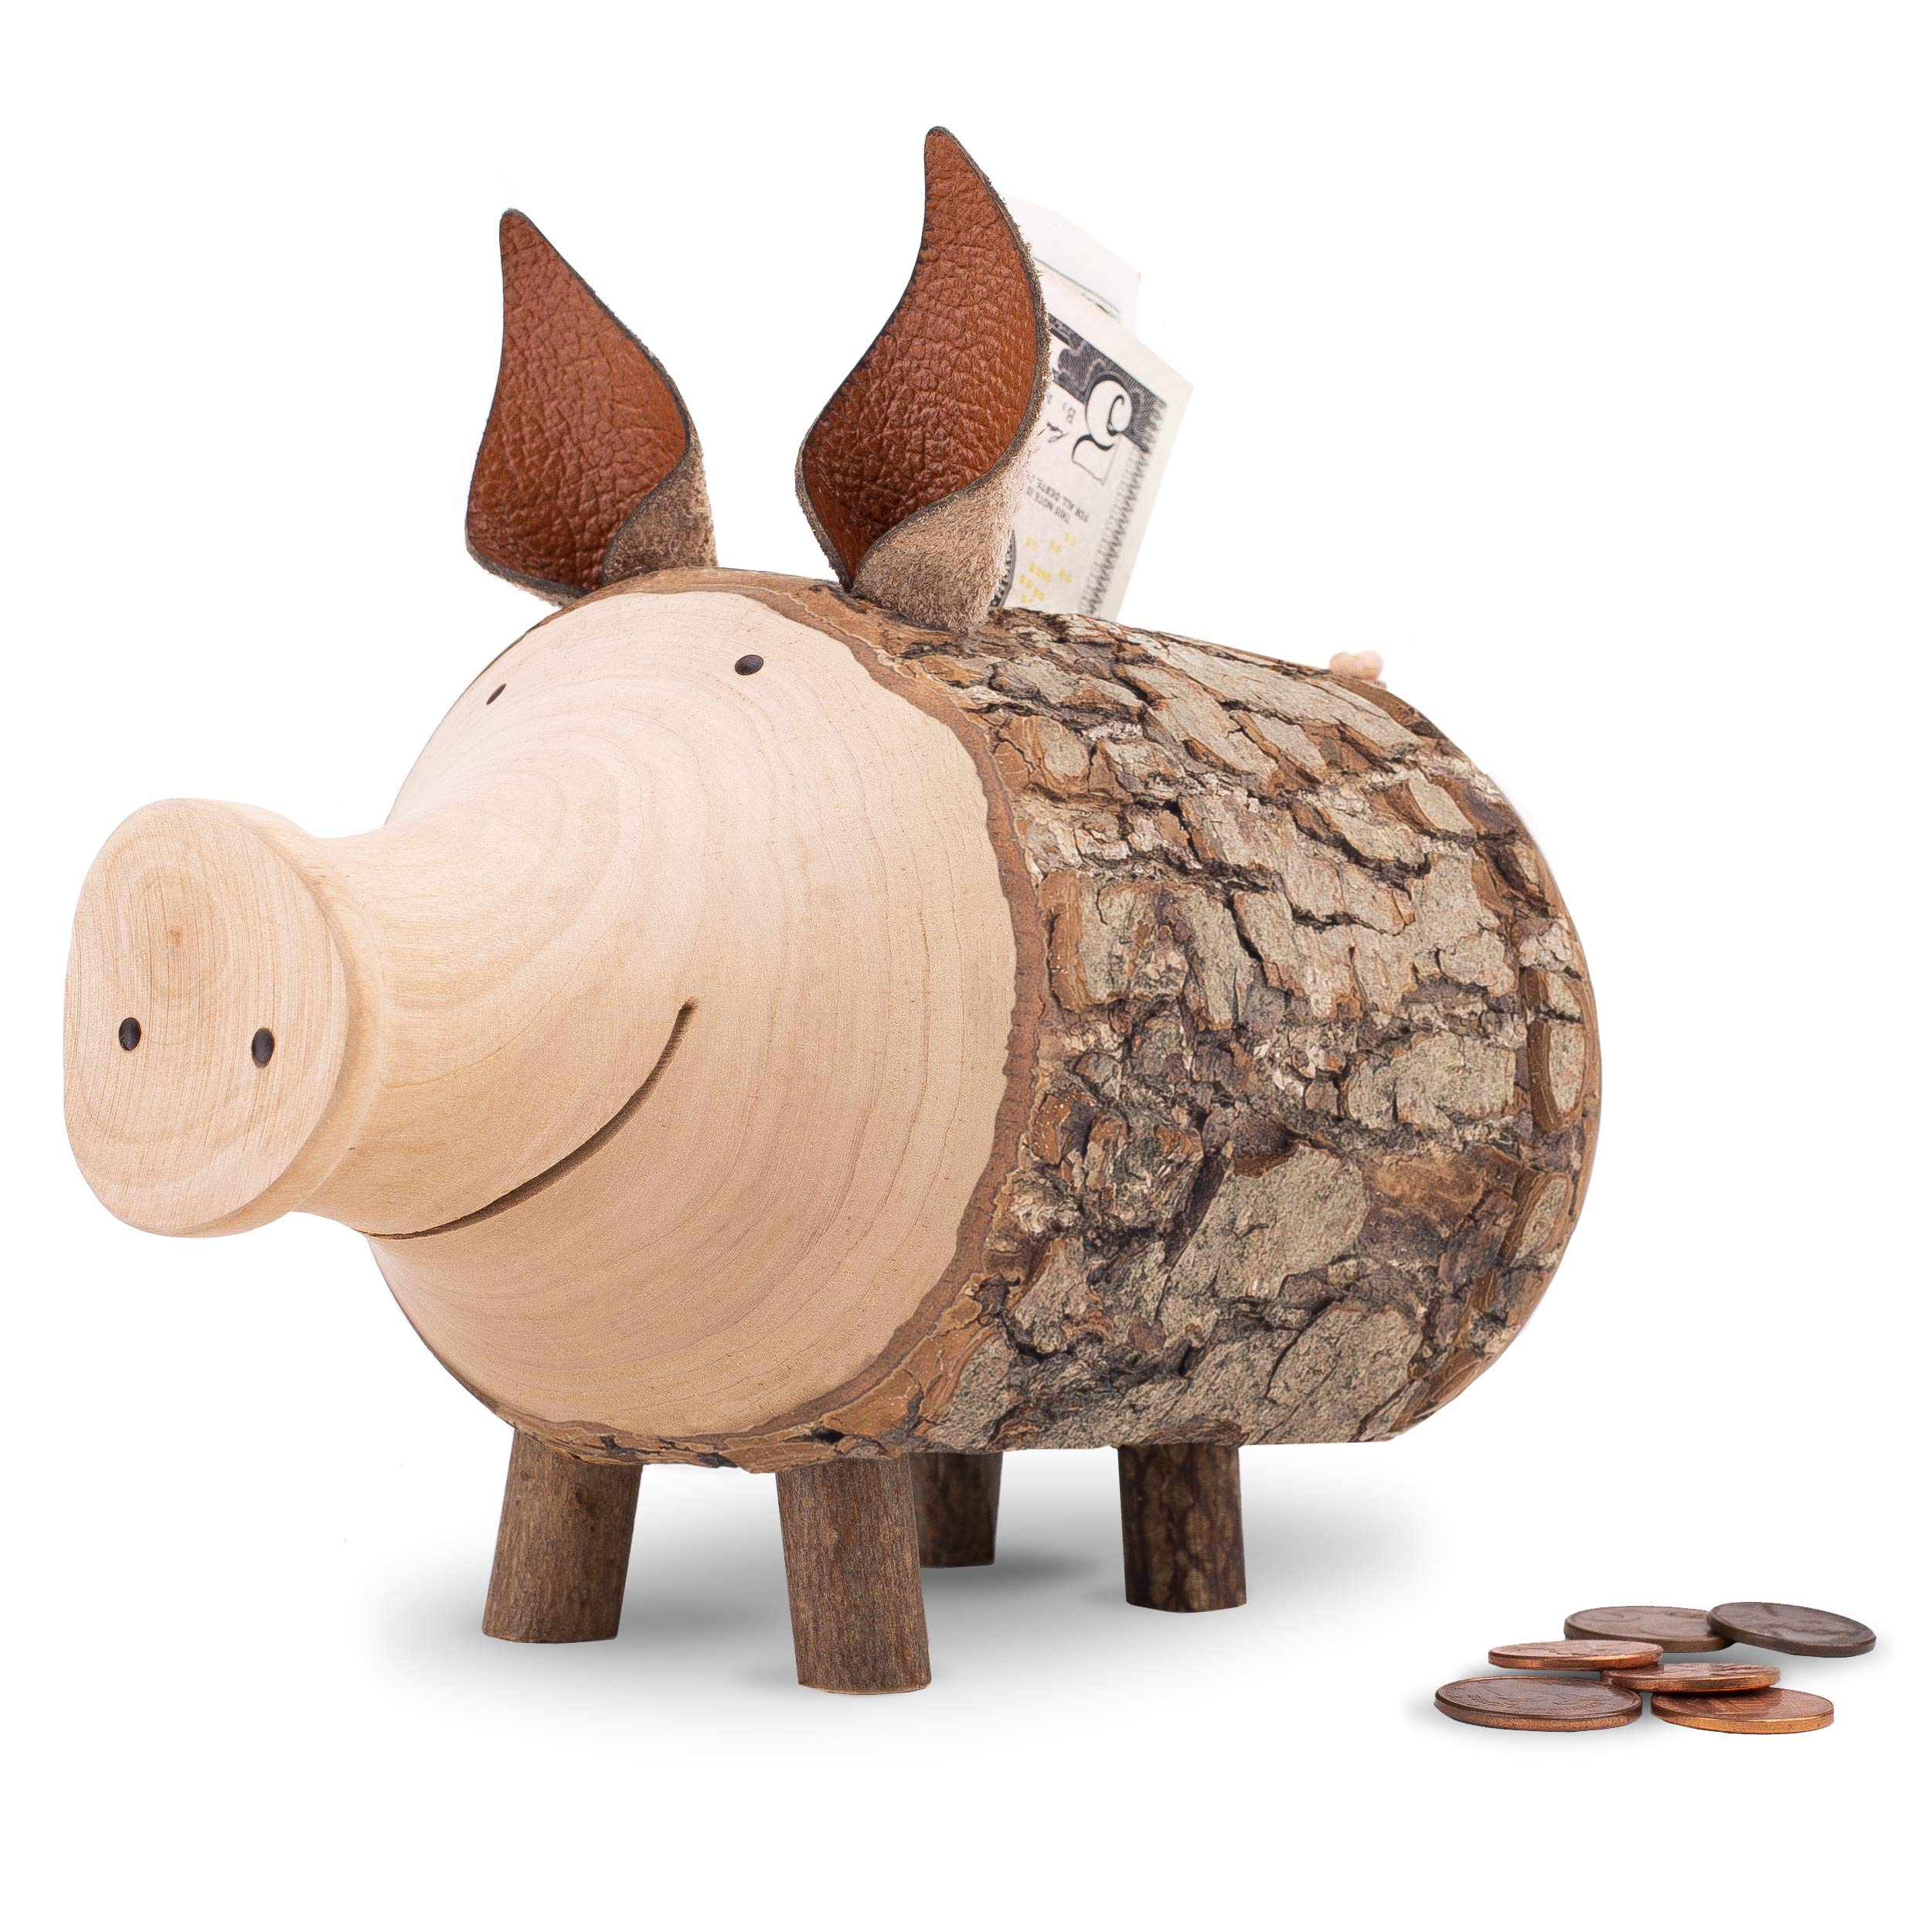 Forest Decor Cute Kid's Piggy Bank for Boys and Girls, Handmade Wood Craftsmanship, Cute Unfinished Bark, Stores Cash and Coins, Made in Germany (Large)